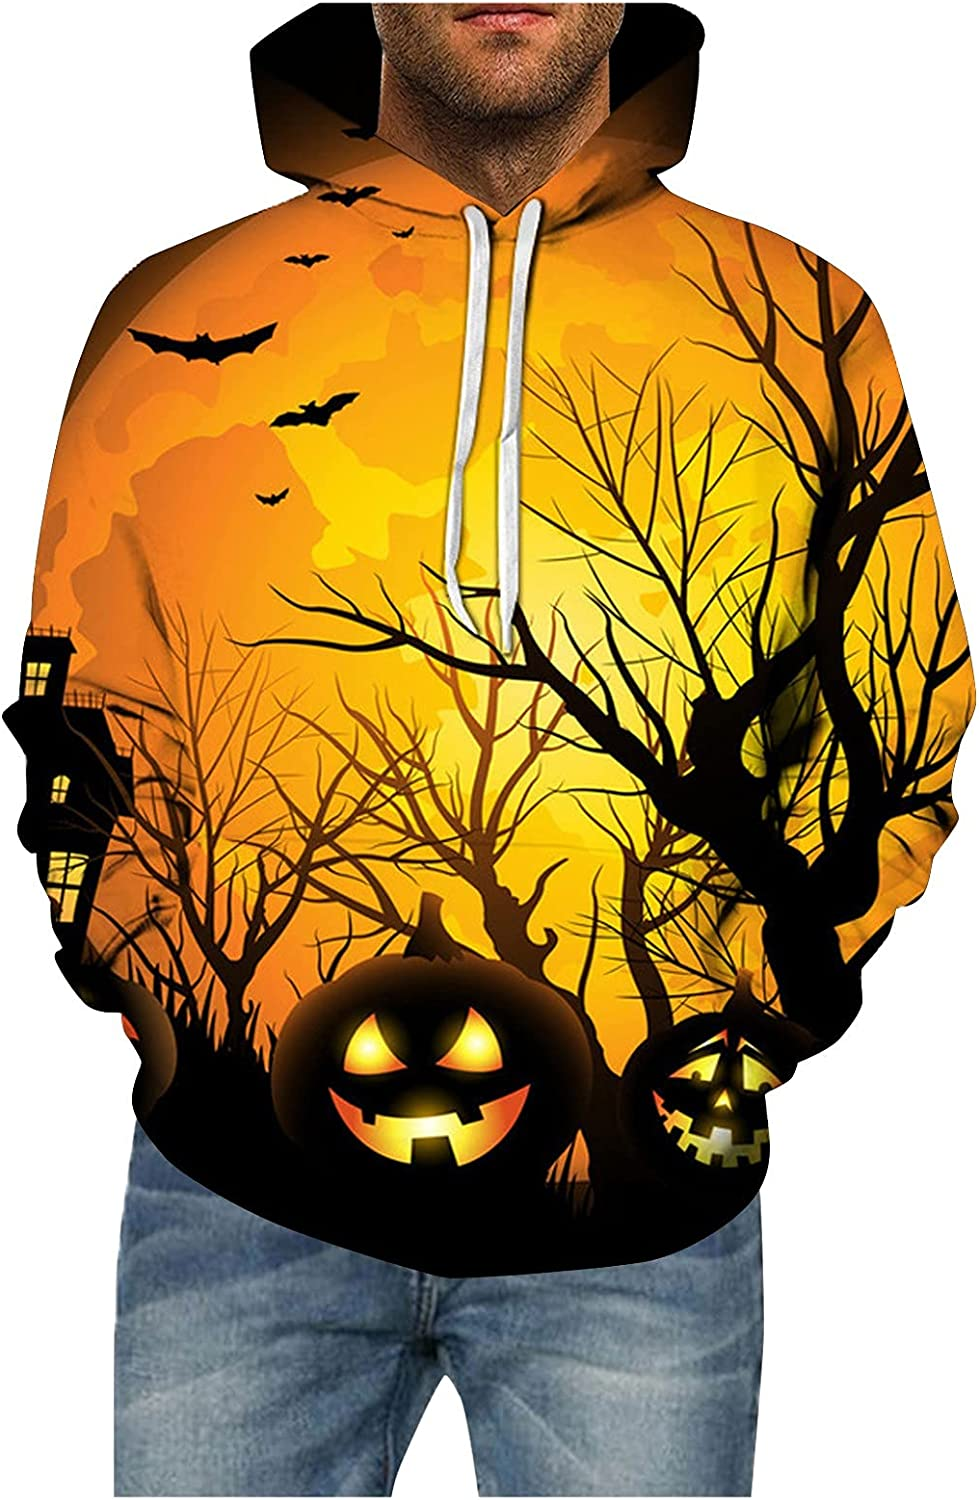 Burband Unisex Halloween Graphic Hoodie Pullover Sweatshirts Evil Pumpkin 3D Printed Hoodies Sweaters for Couples Plus Size